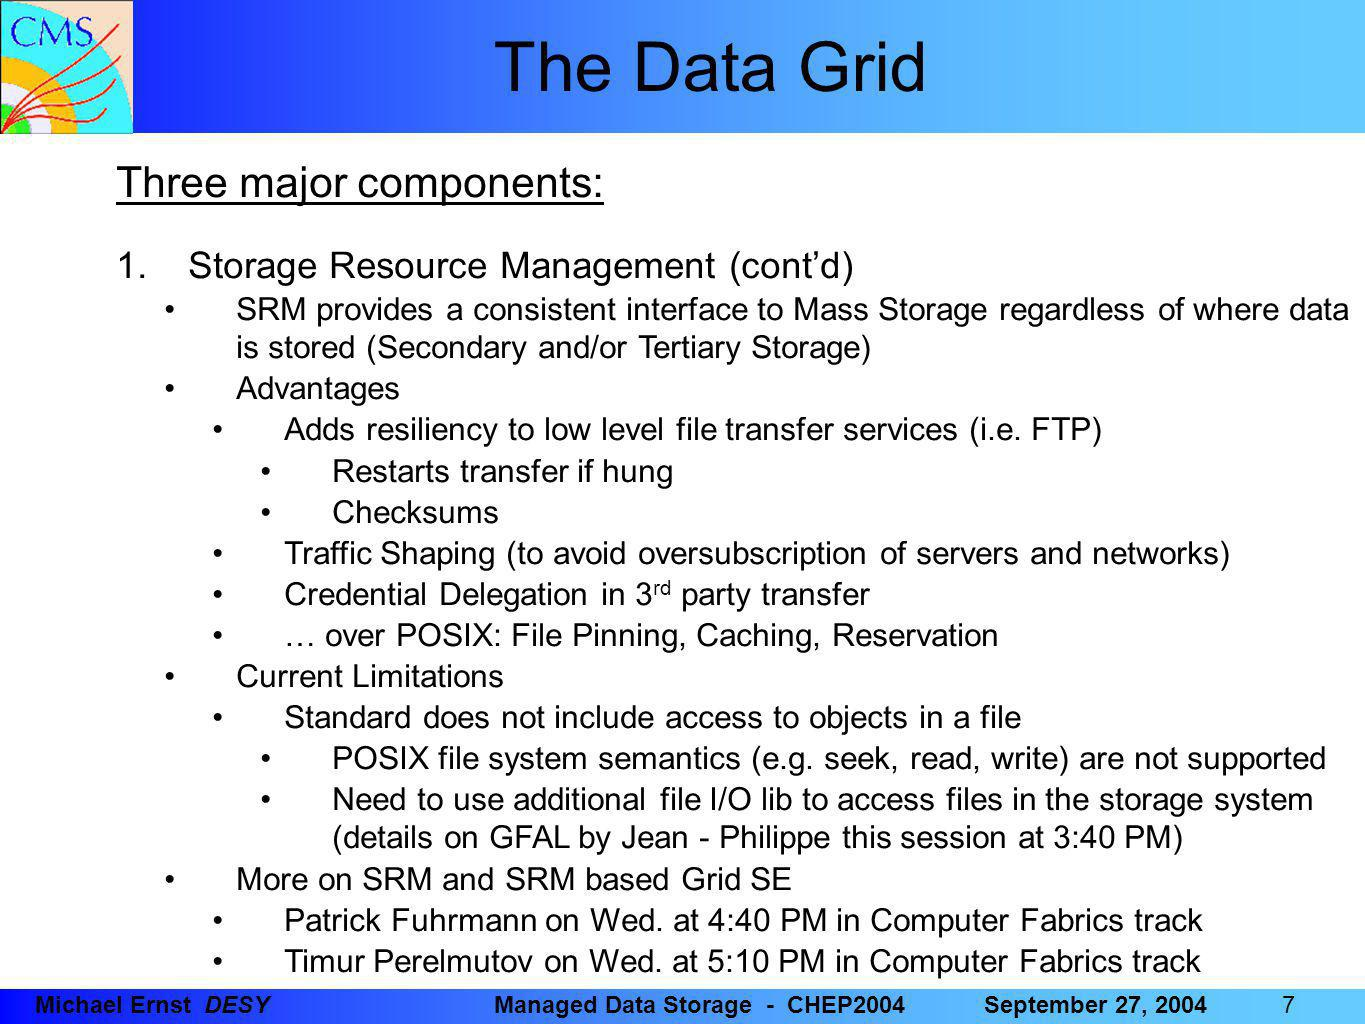 88 8Michael Ernst DESYManaged Data Storage - CHEP2004September 27, 2004 The Data Grid Three major components: 2.